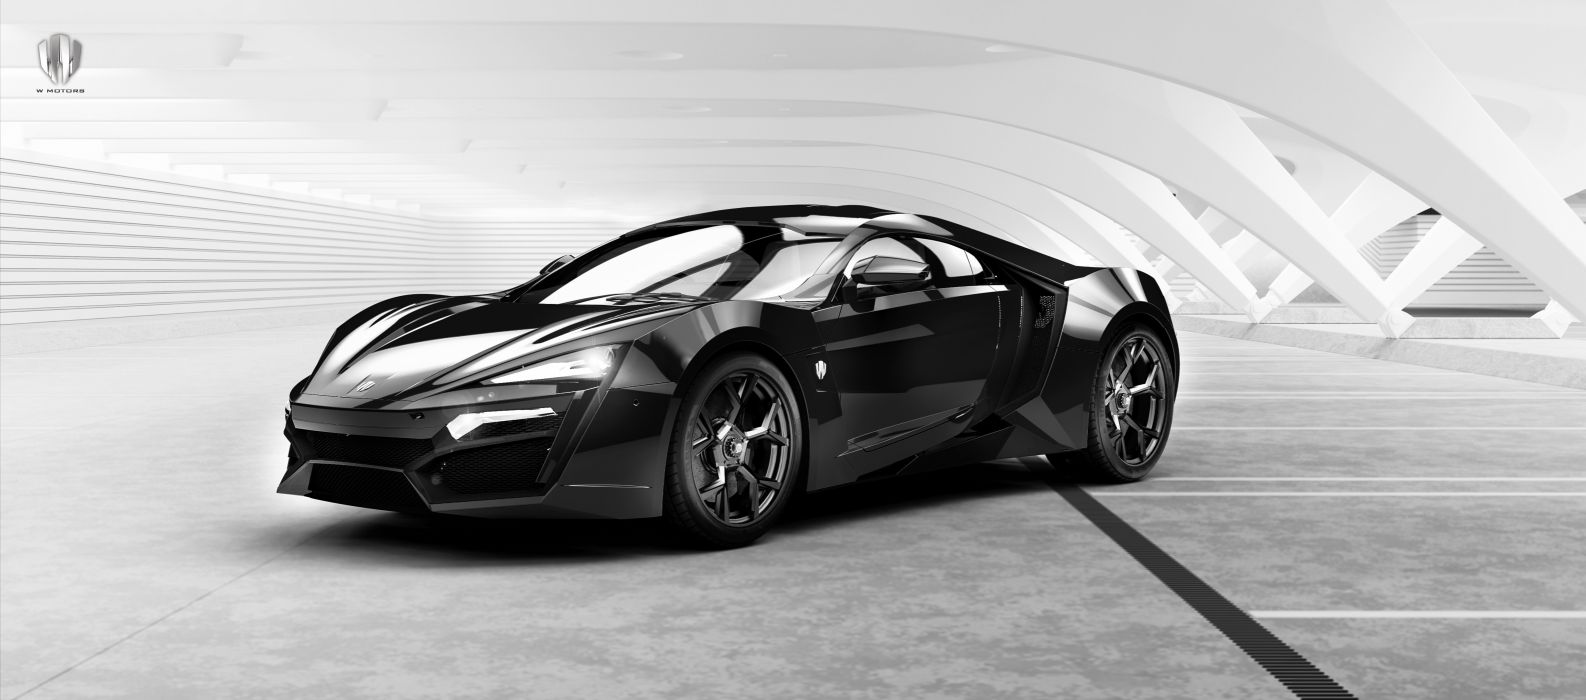 W Motors Lykan HyperSport 2014 4K wallpaper | 7468x3297 | 629638